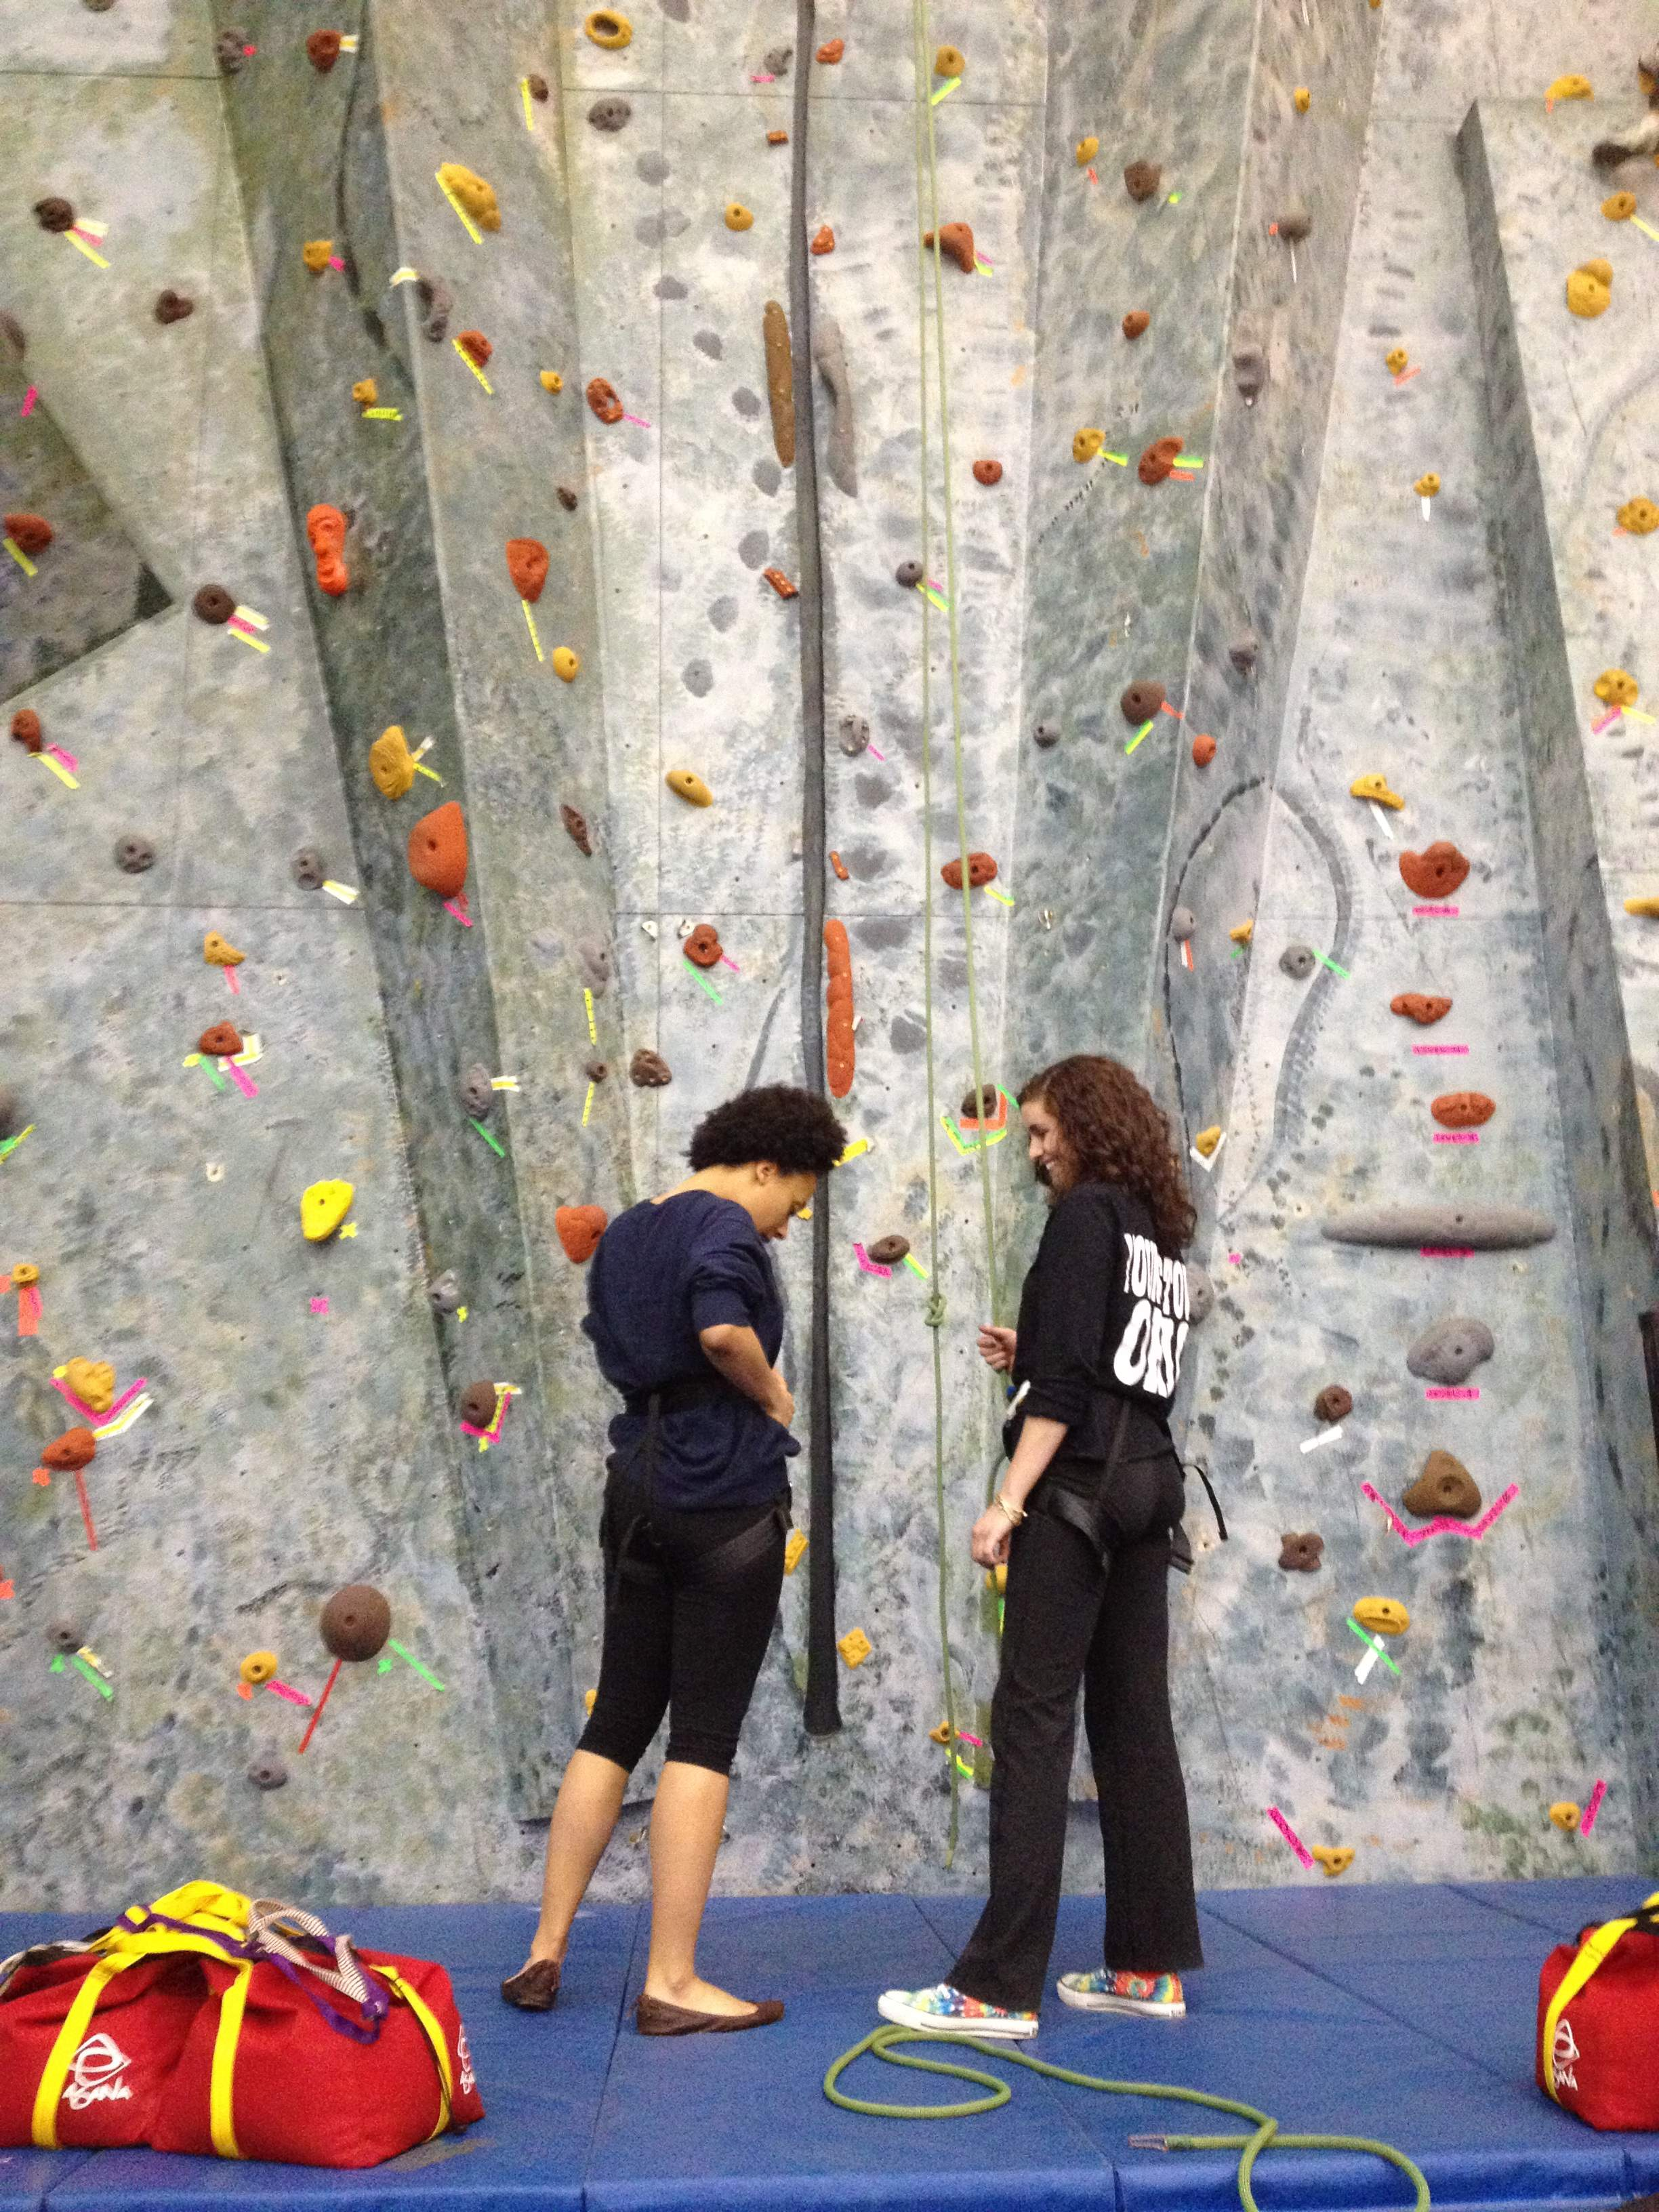 Julie and I getting ready to climb the wall.